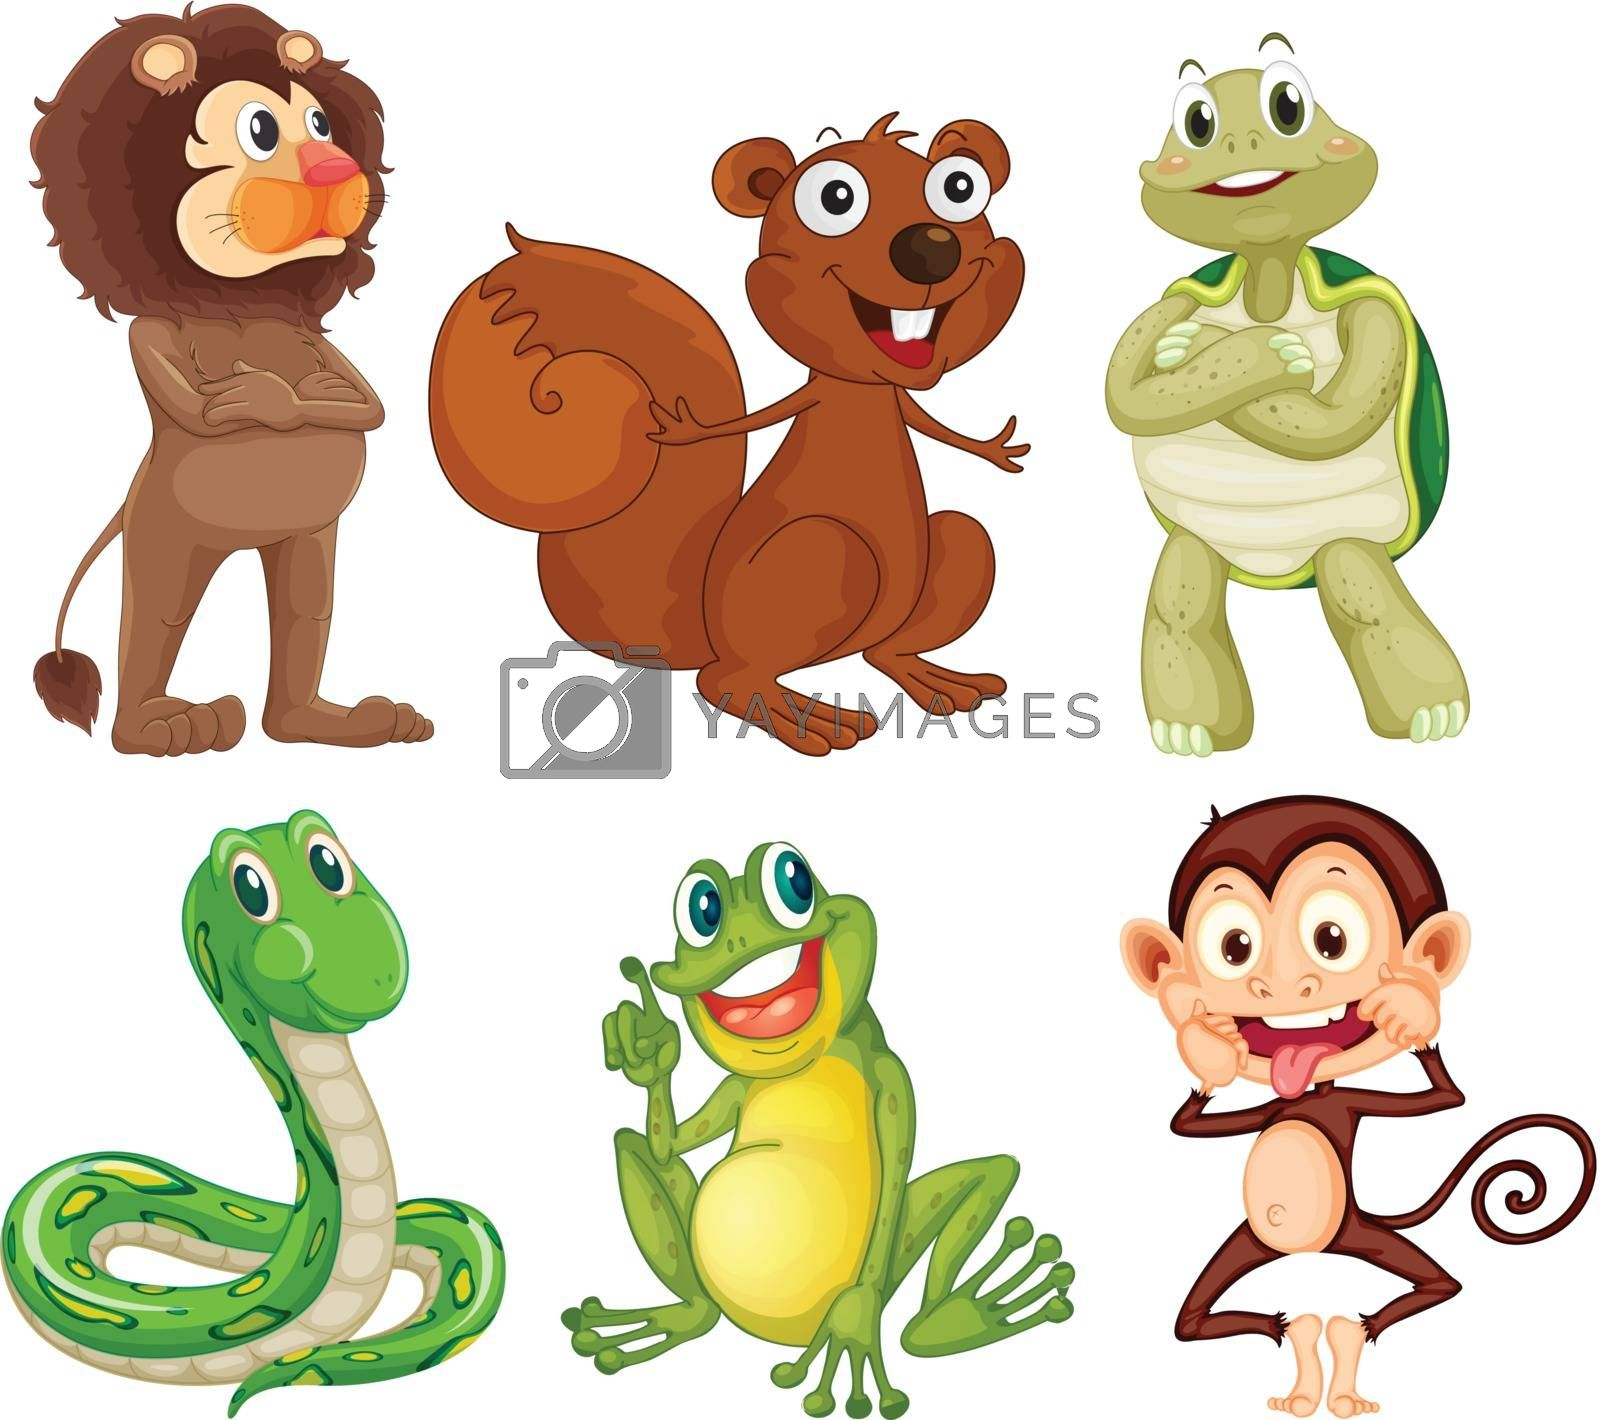 Illustration of the six different kinds of animals in the jungle on a white background